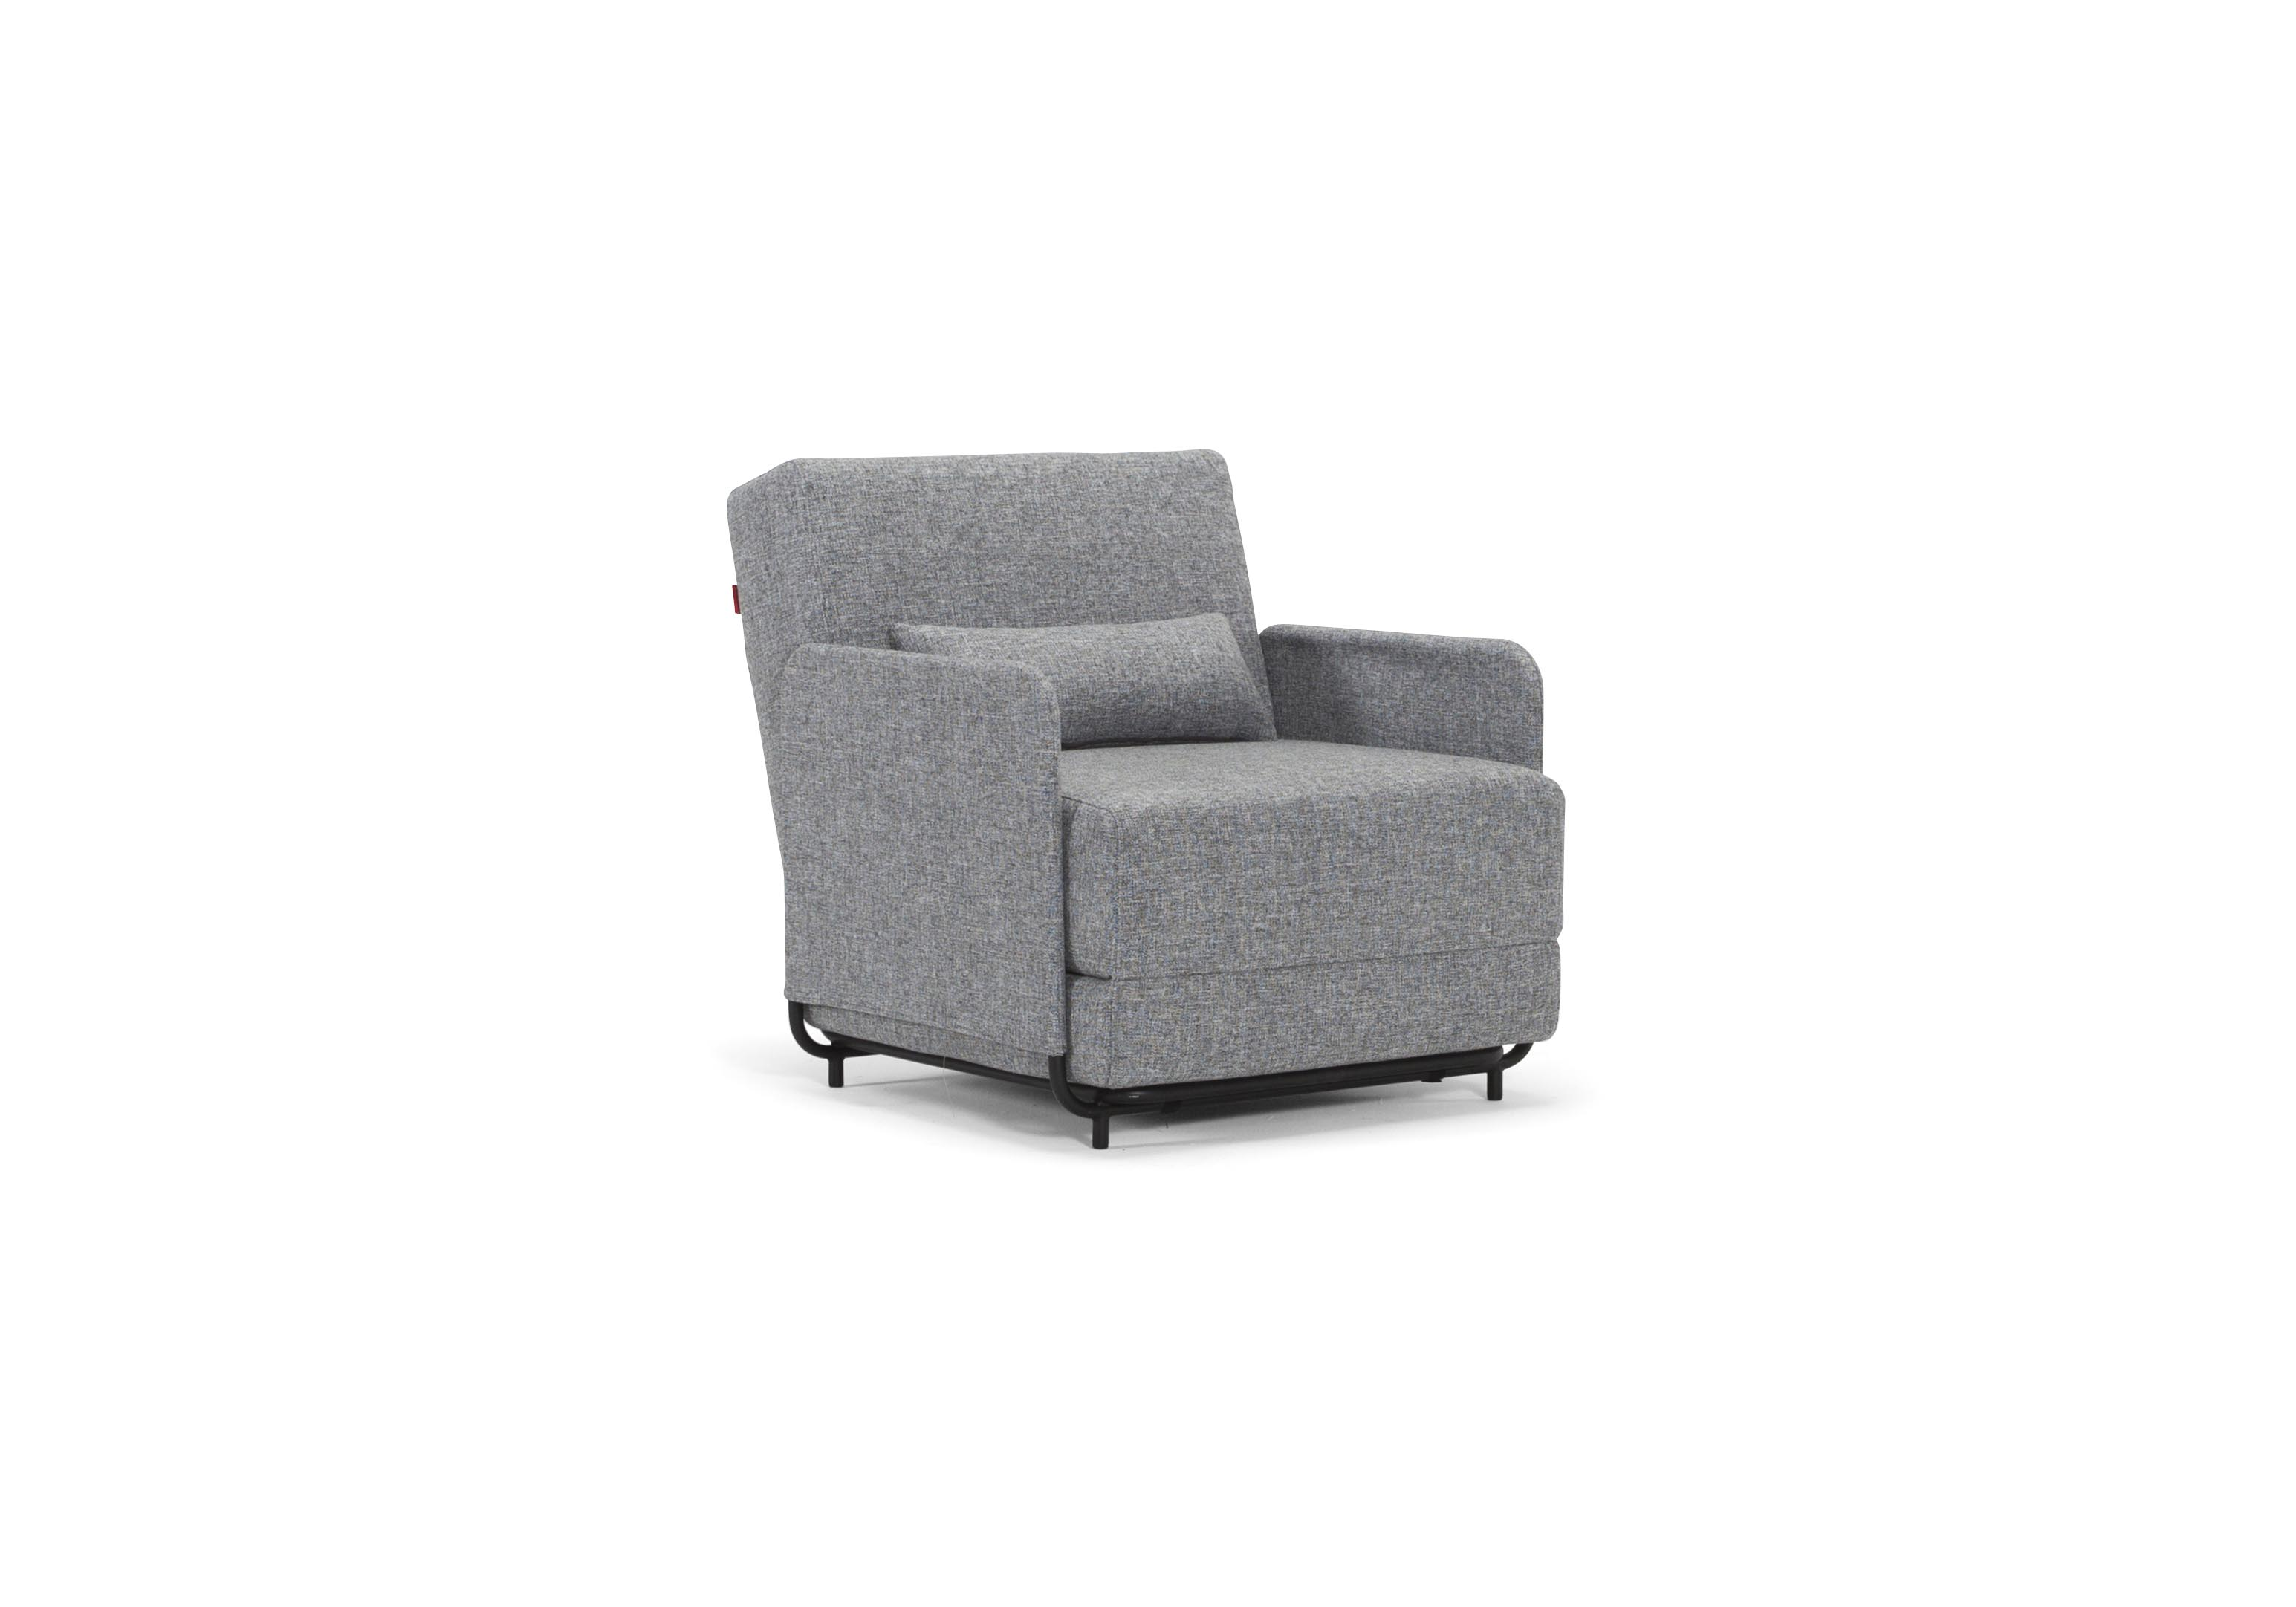 Fluxe Chair Twist Granite By Innovation